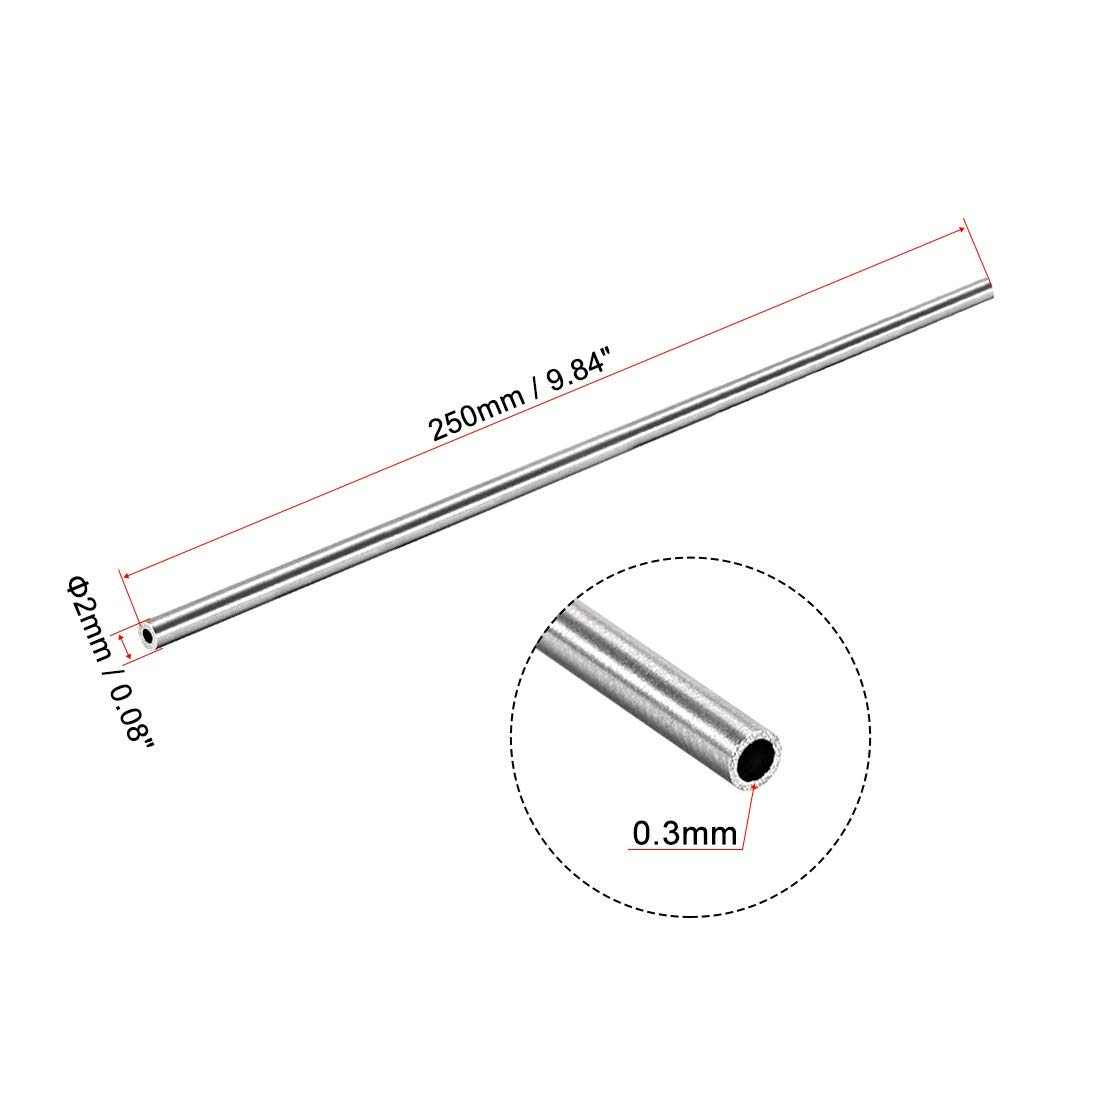 Round Stainless Steel Tube 304 2 mm OD 0.3 mm Wall Thickness 250 mm Length Straight Seamless Tube Tube 8 Pieces